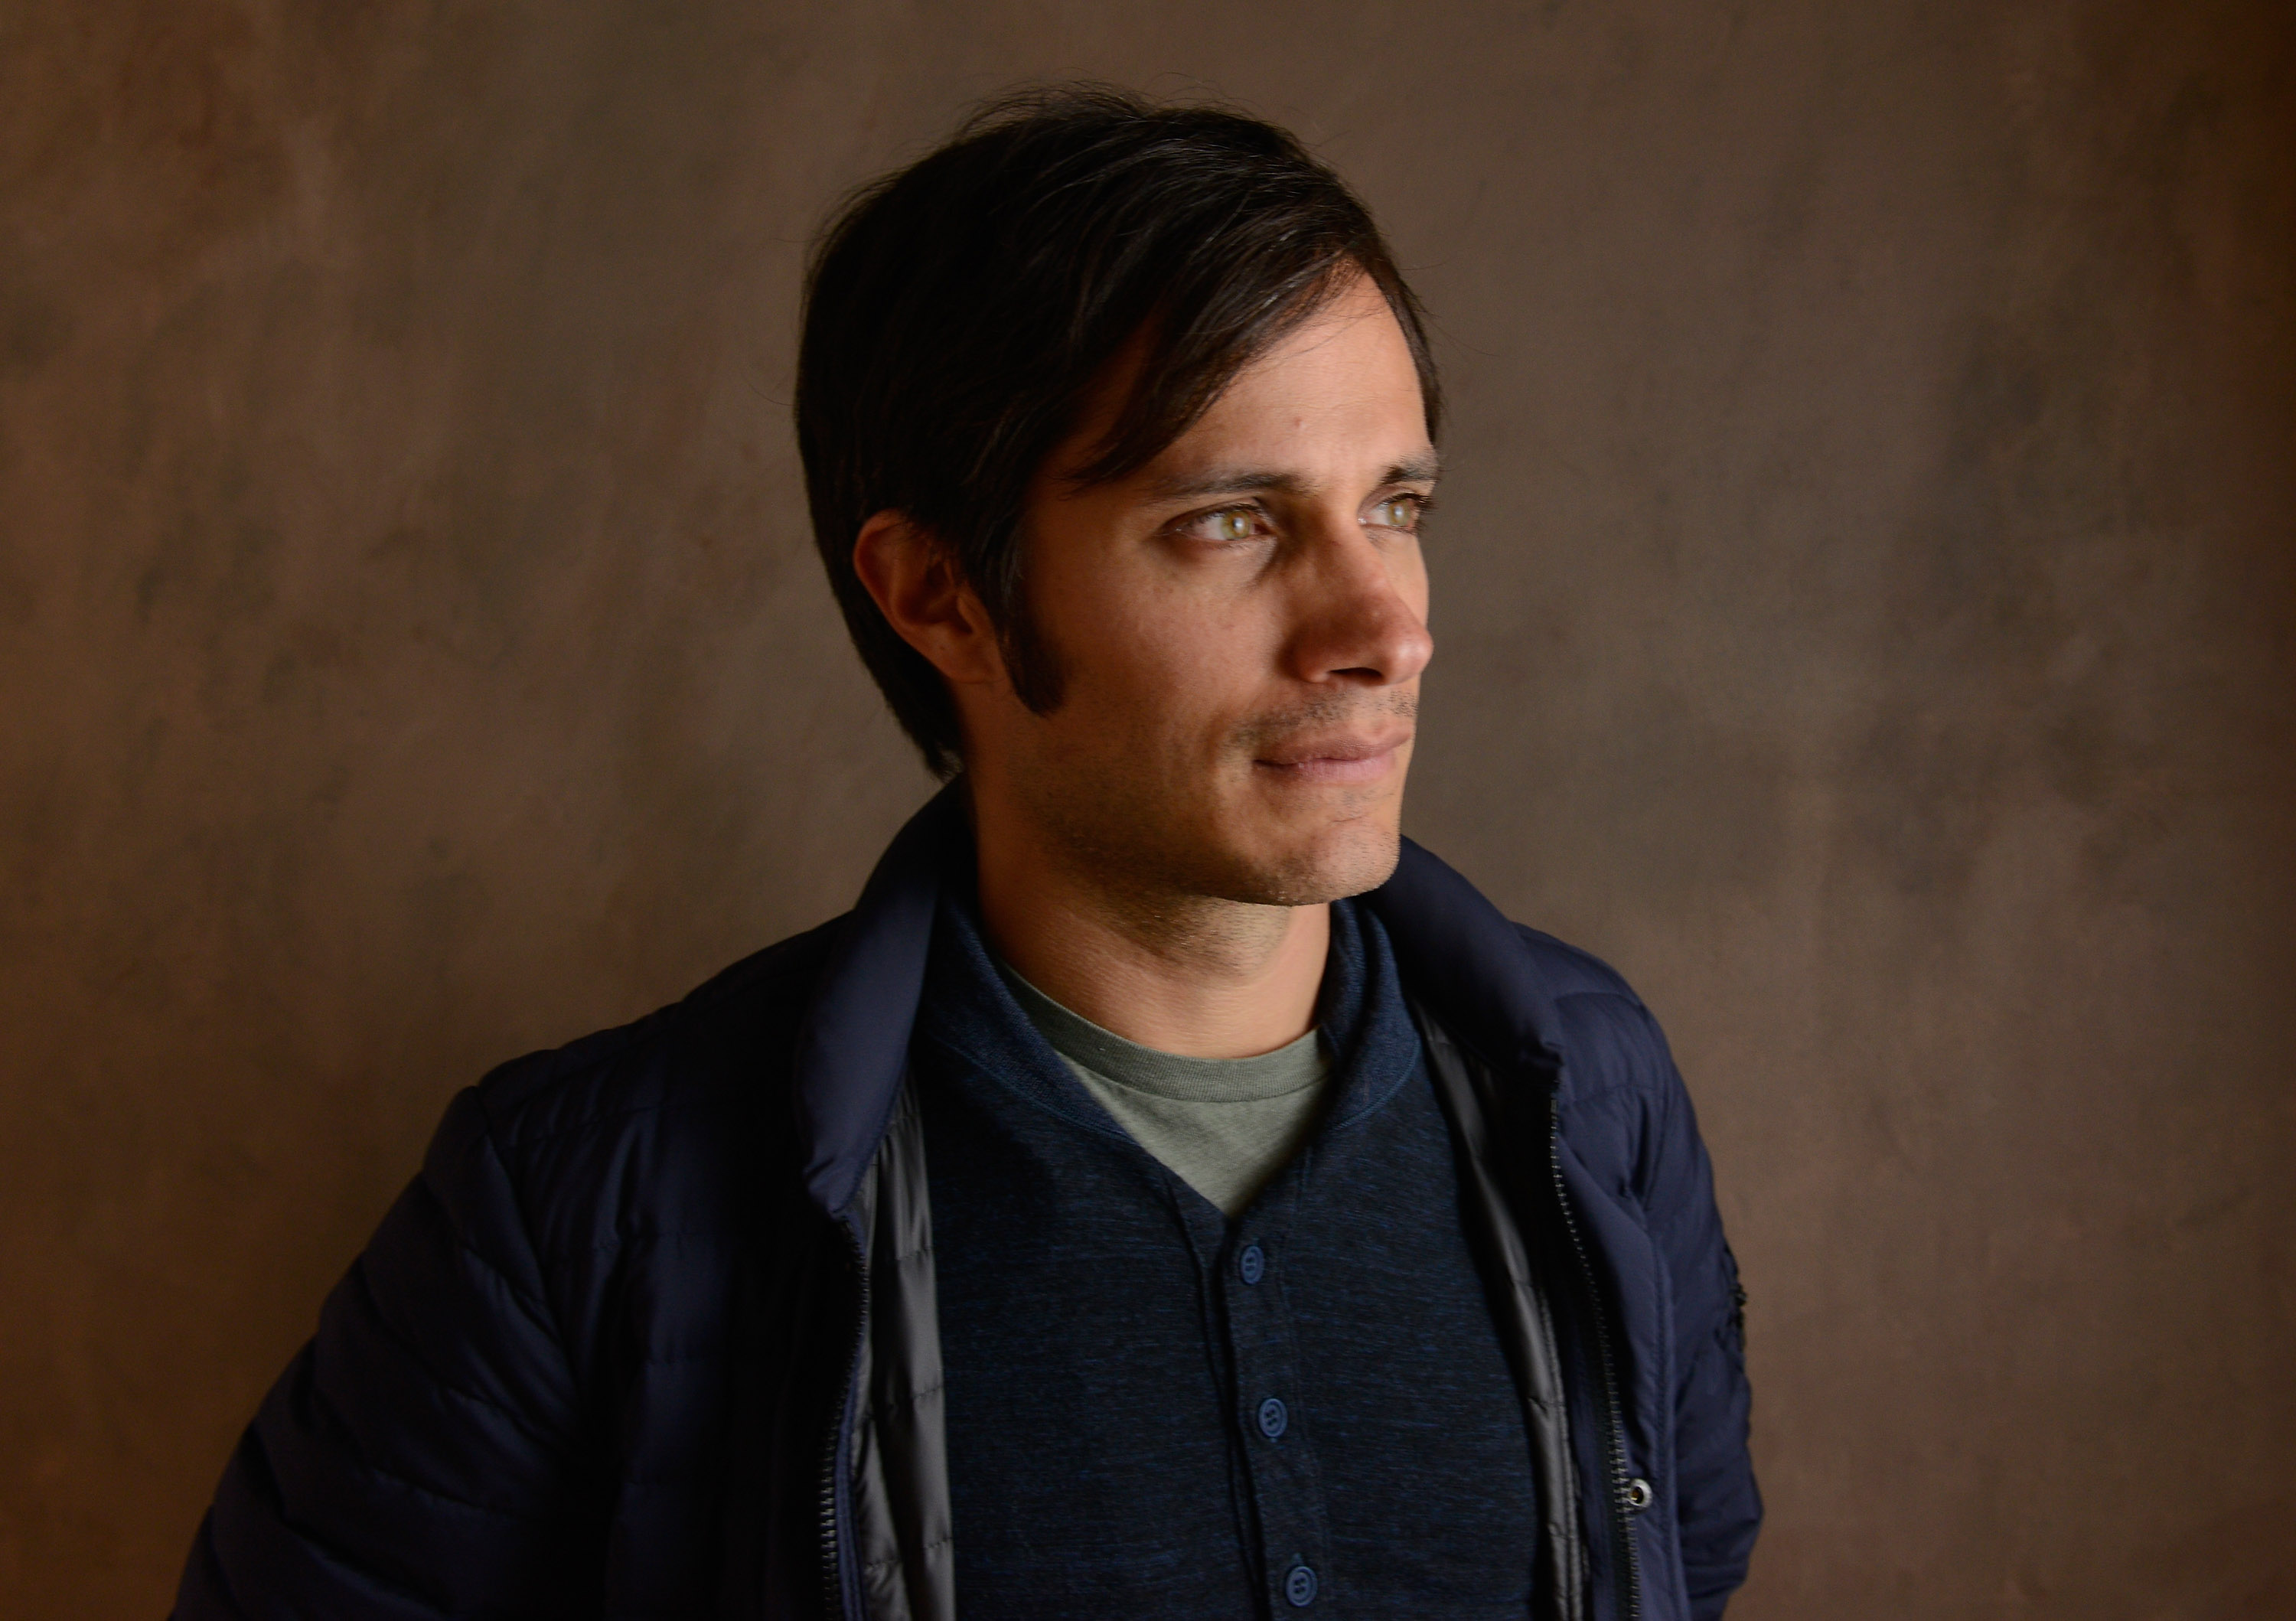 Gael García Bernal takes on Pinochet in his new film No (Picture: Getty)